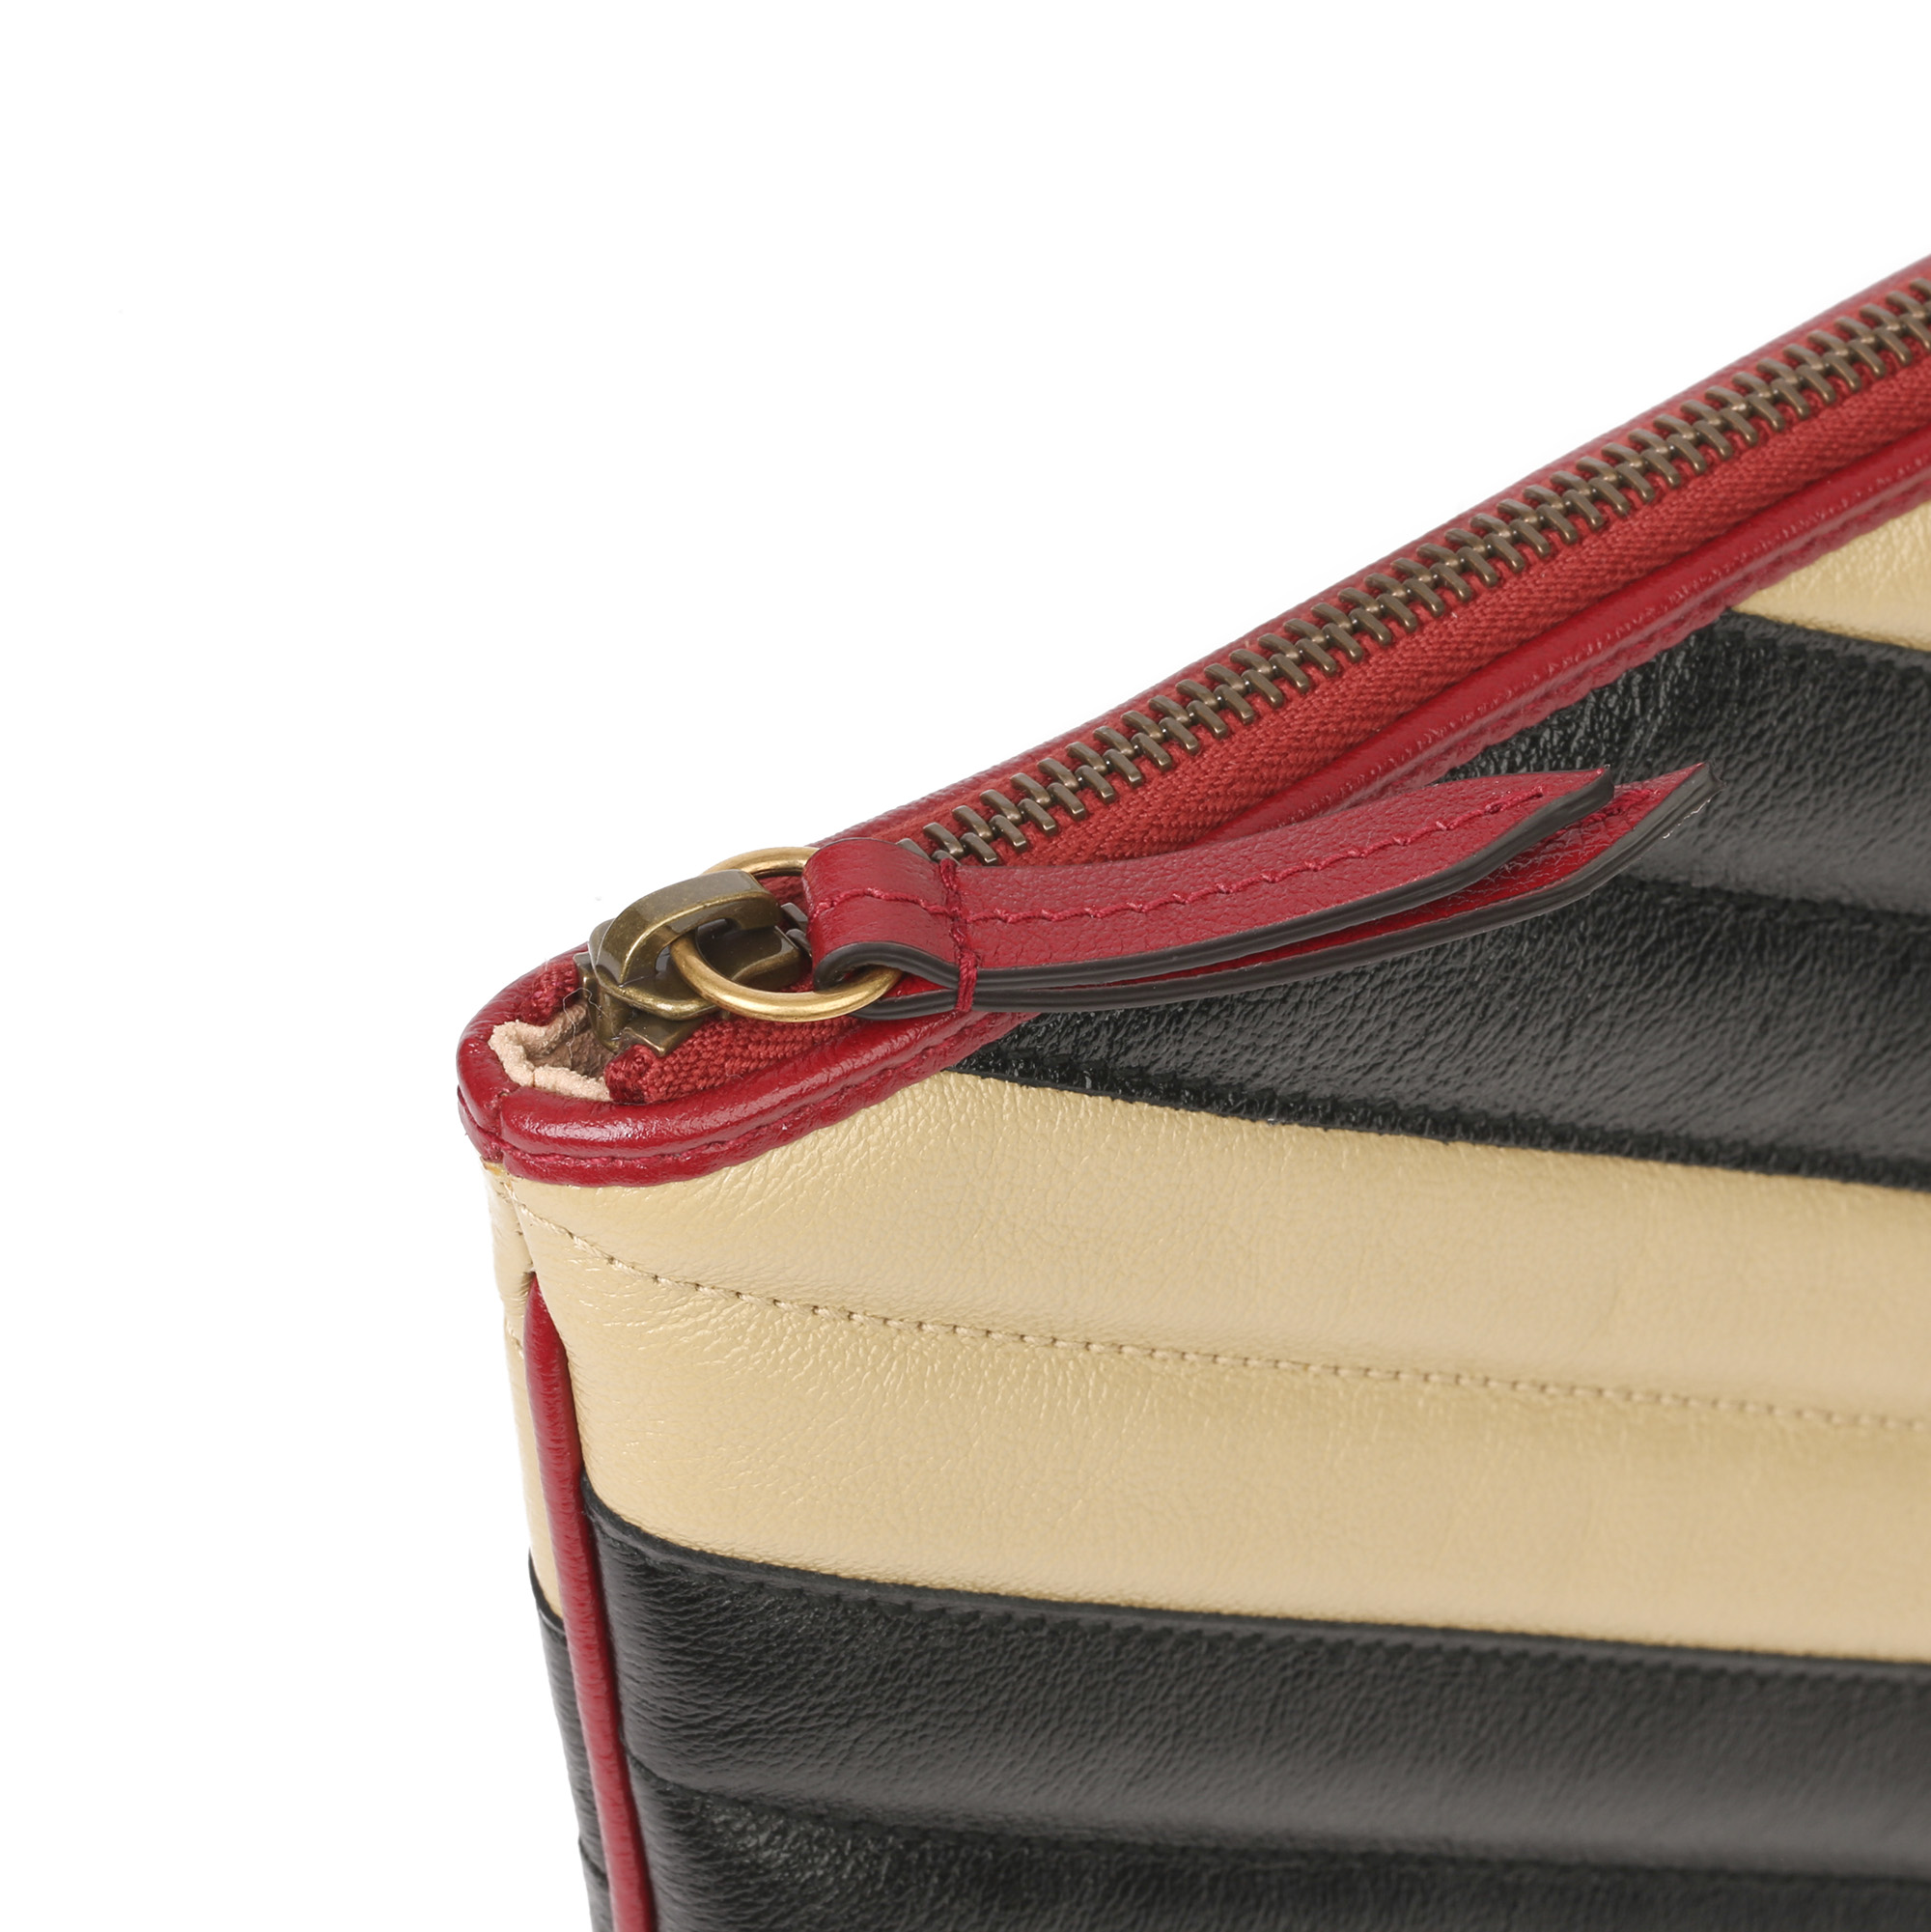 Gucci Black, Cream & Red Diagonal Quilted Aged Calfskin Leather Marmont Pouch - Image 6 of 11